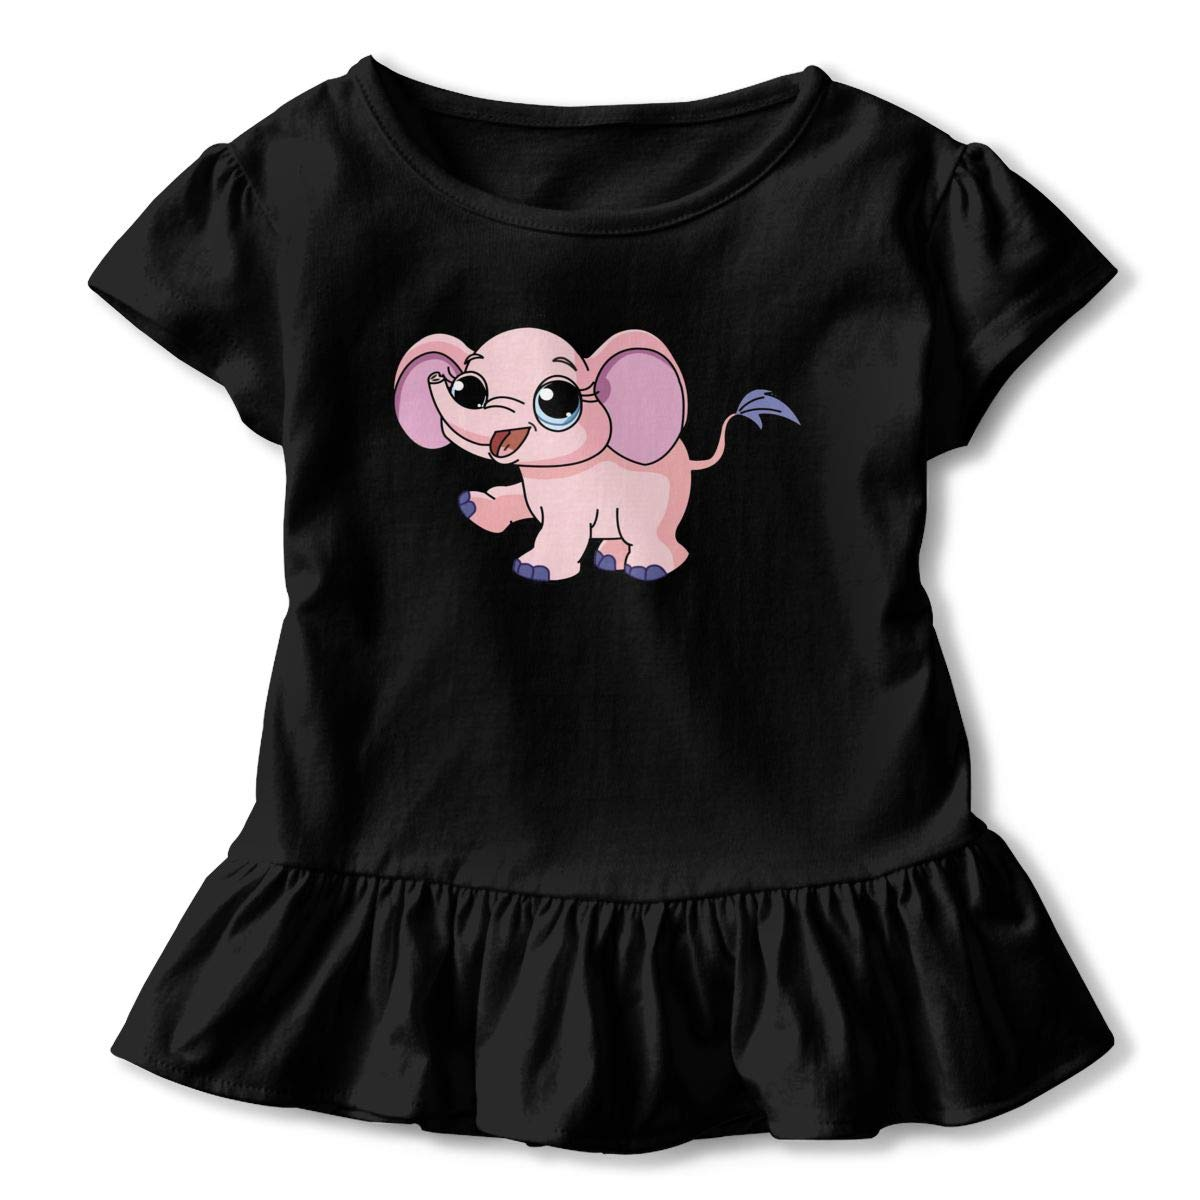 DXTDCMMe Cute Baby Elephant Baby Girl Ruffle T-Shirt Crew Neck Tees for 2-6T